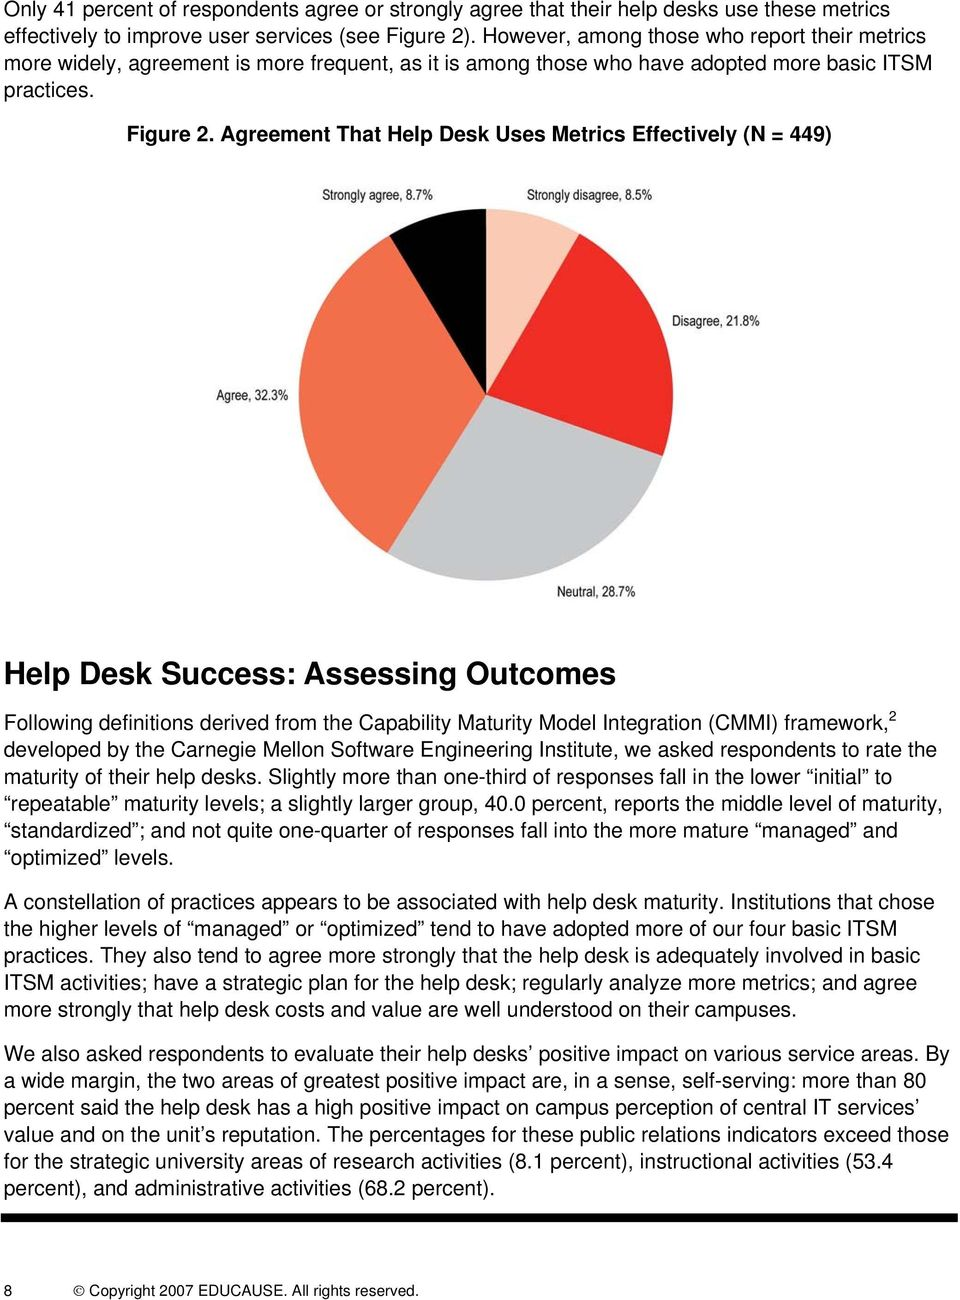 Agreement That Help Desk Uses Metrics Effectively (N = 449) Help Desk Success: Assessing Outcomes Following definitions derived from the Capability Maturity Model Integration (CMMI) framework, 2